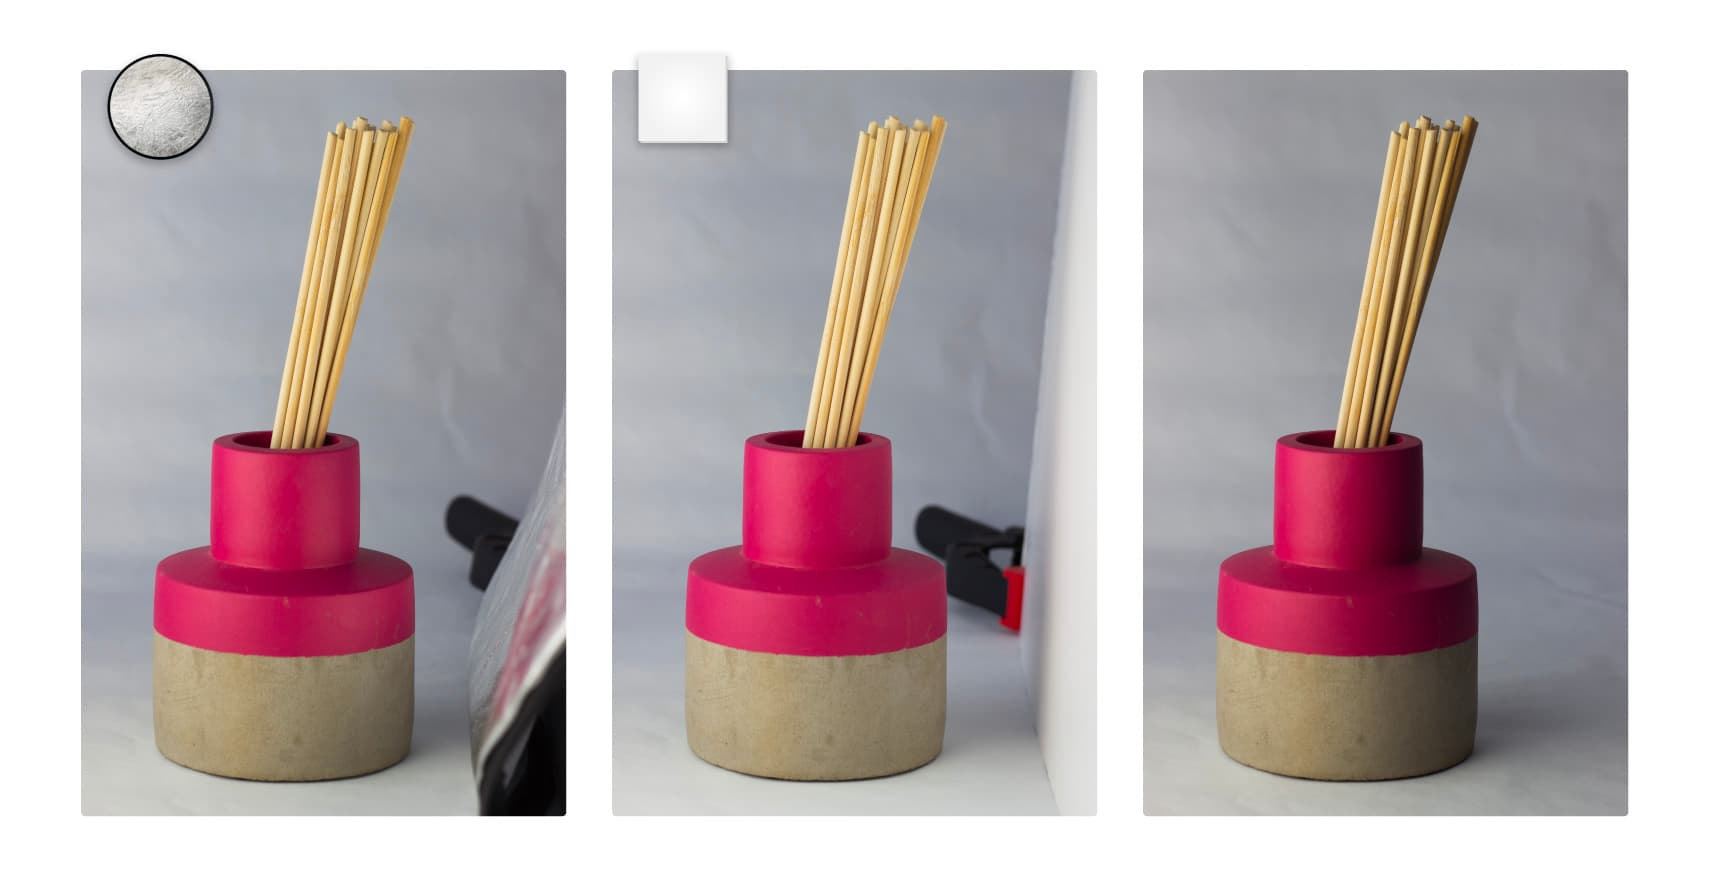 Example of a product photography lit with reflector, foam core, and nothing.